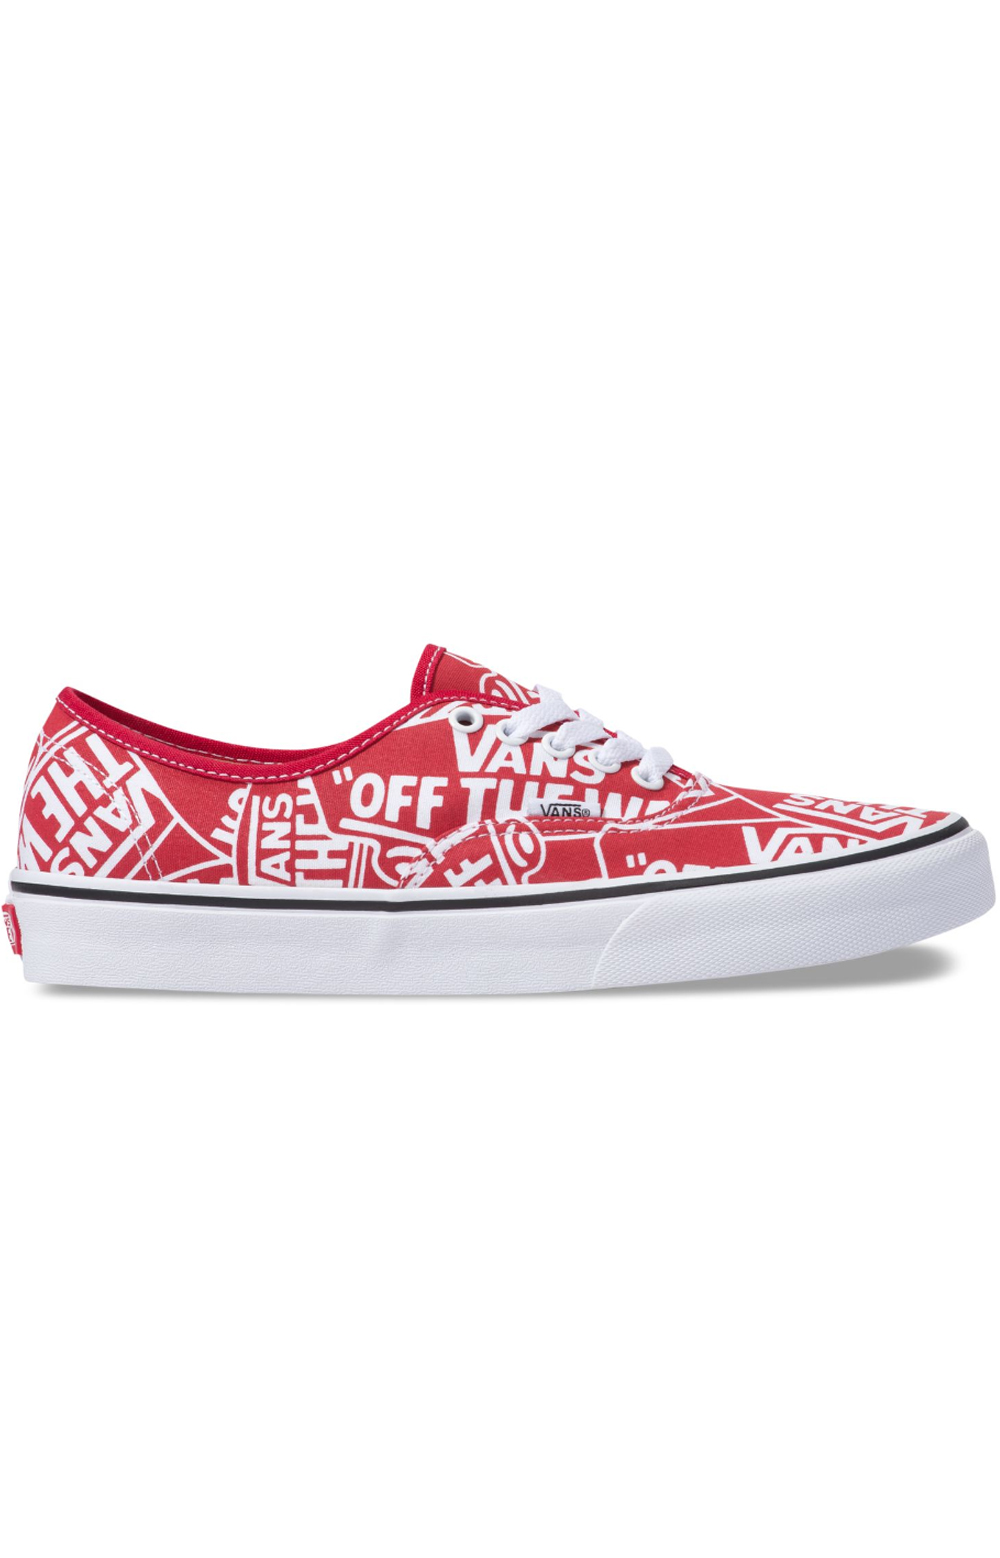 (8EMUKL) OTW Repeat Authentic Shoe - Red/True White